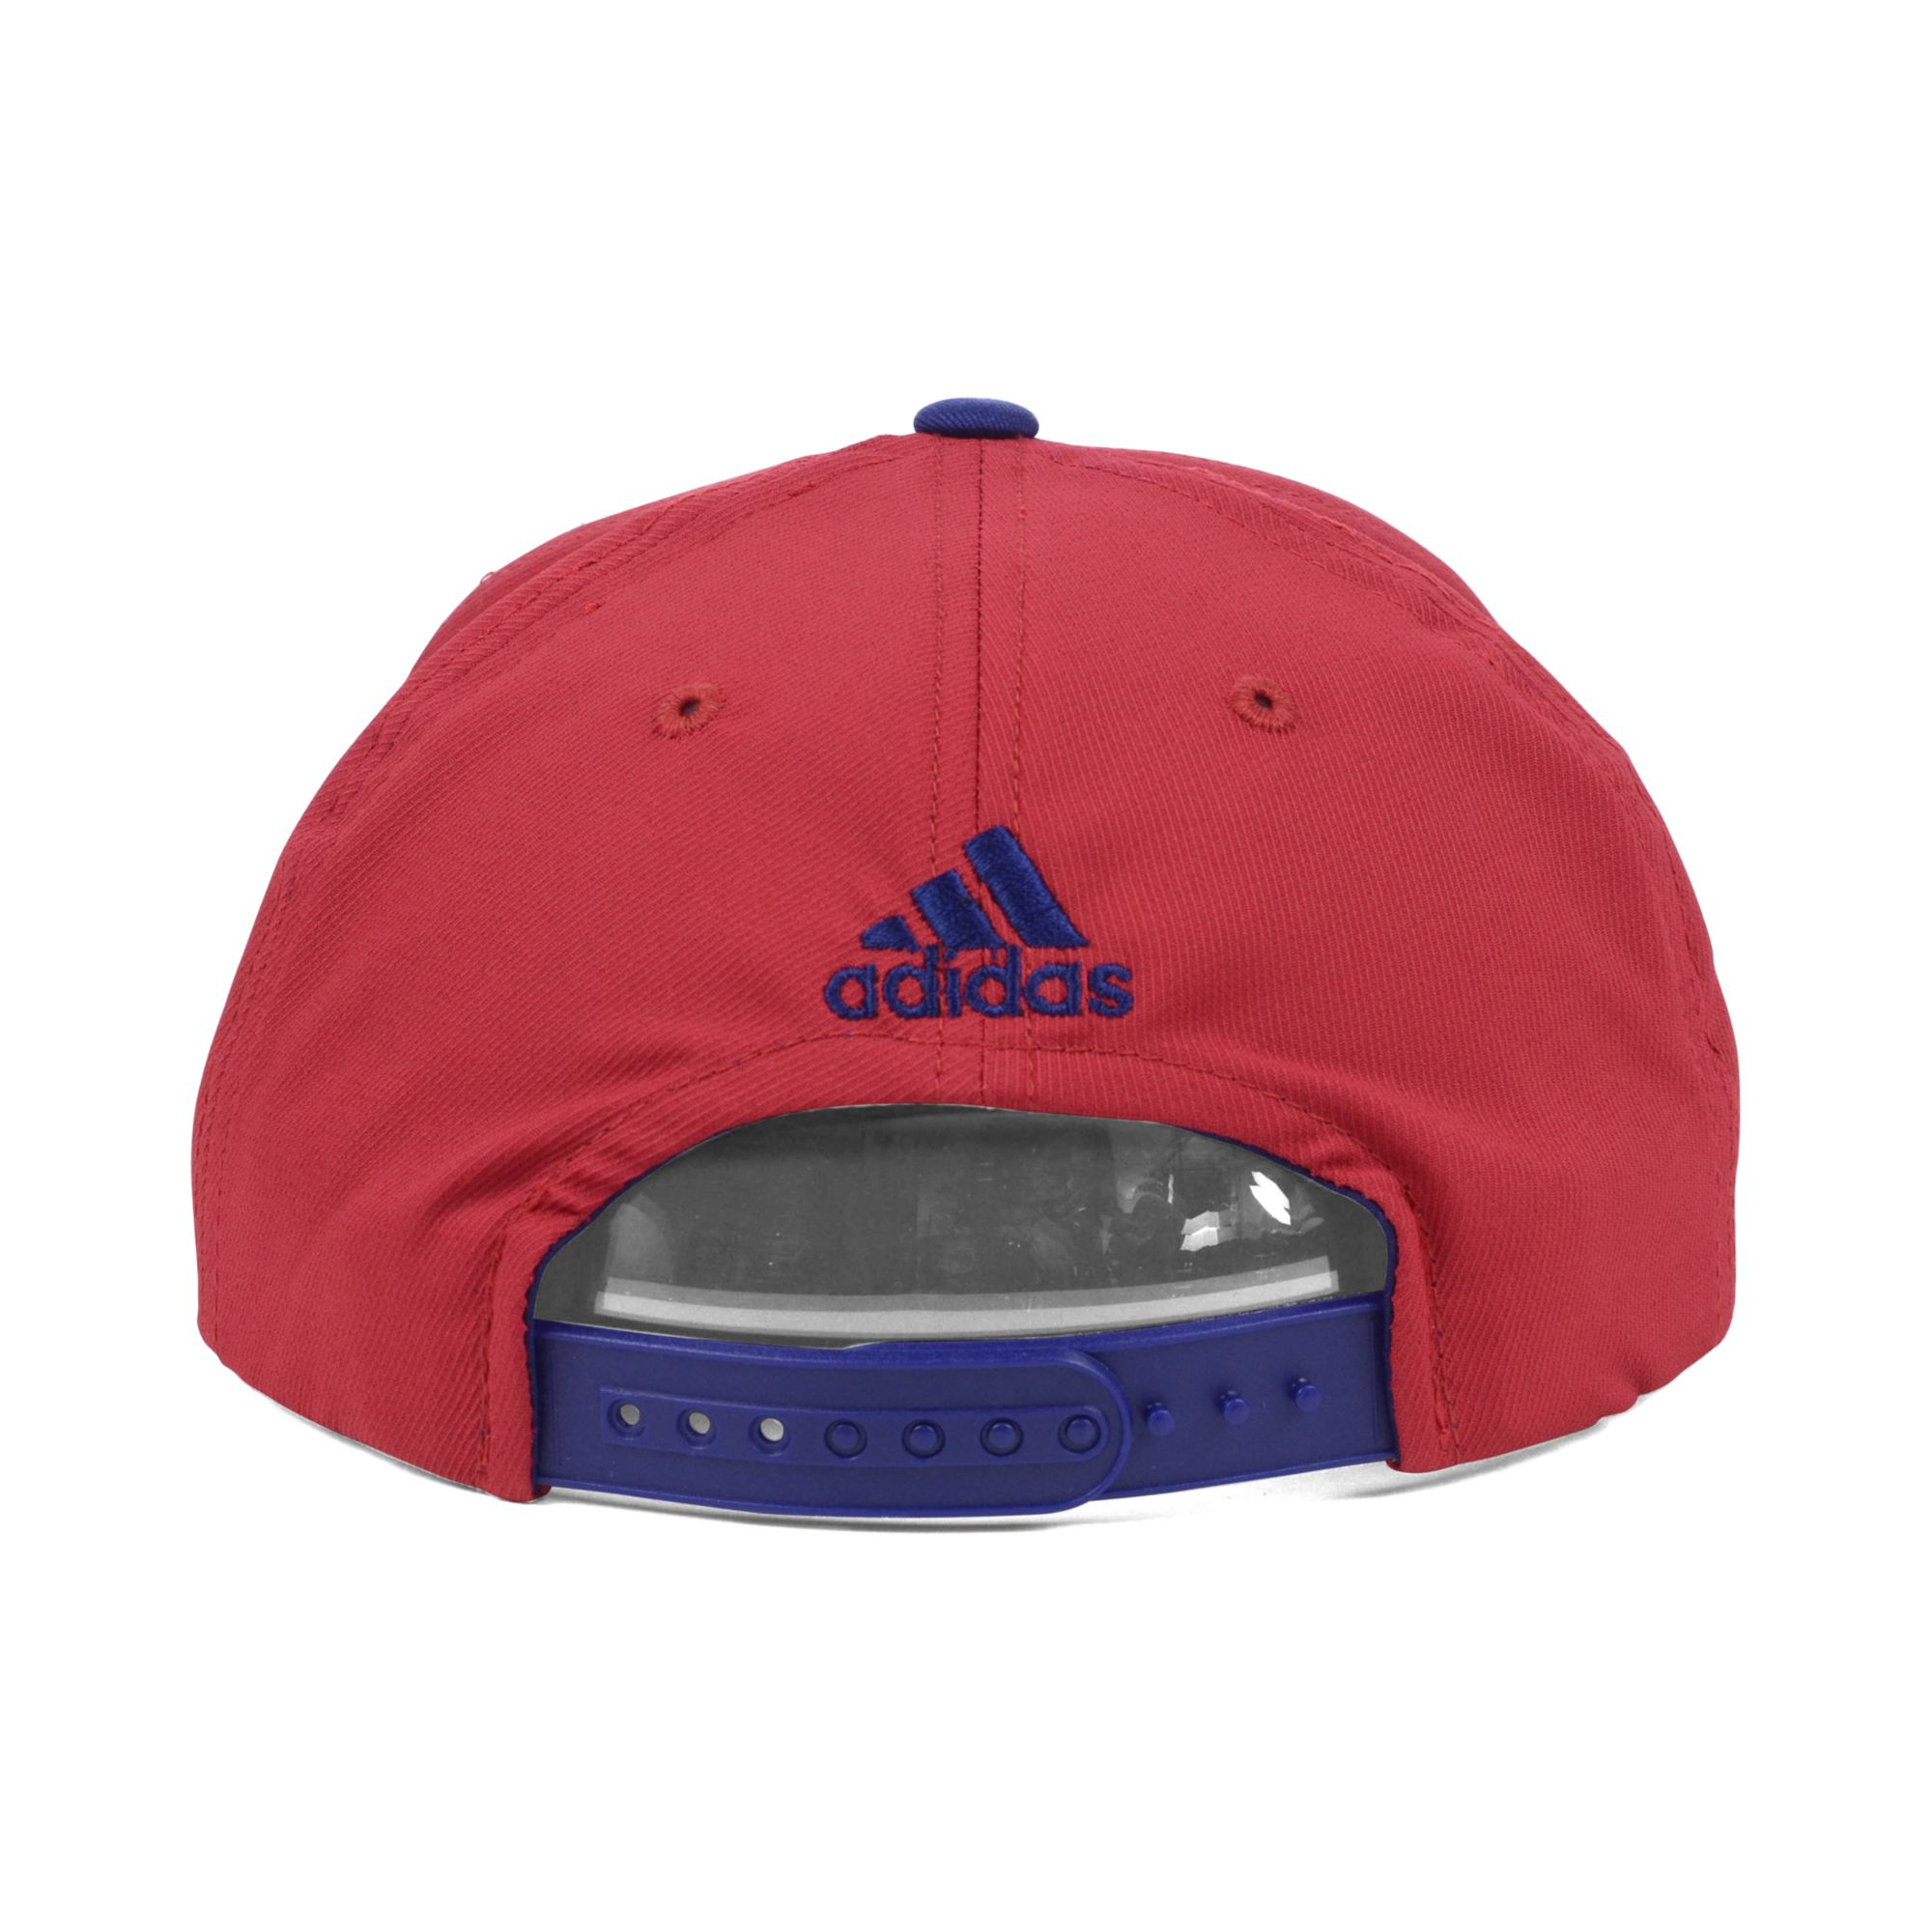 165c82f2a6c Lyst - adidas Real Salt Lake Mls Player Snapback Cap in Red for Men